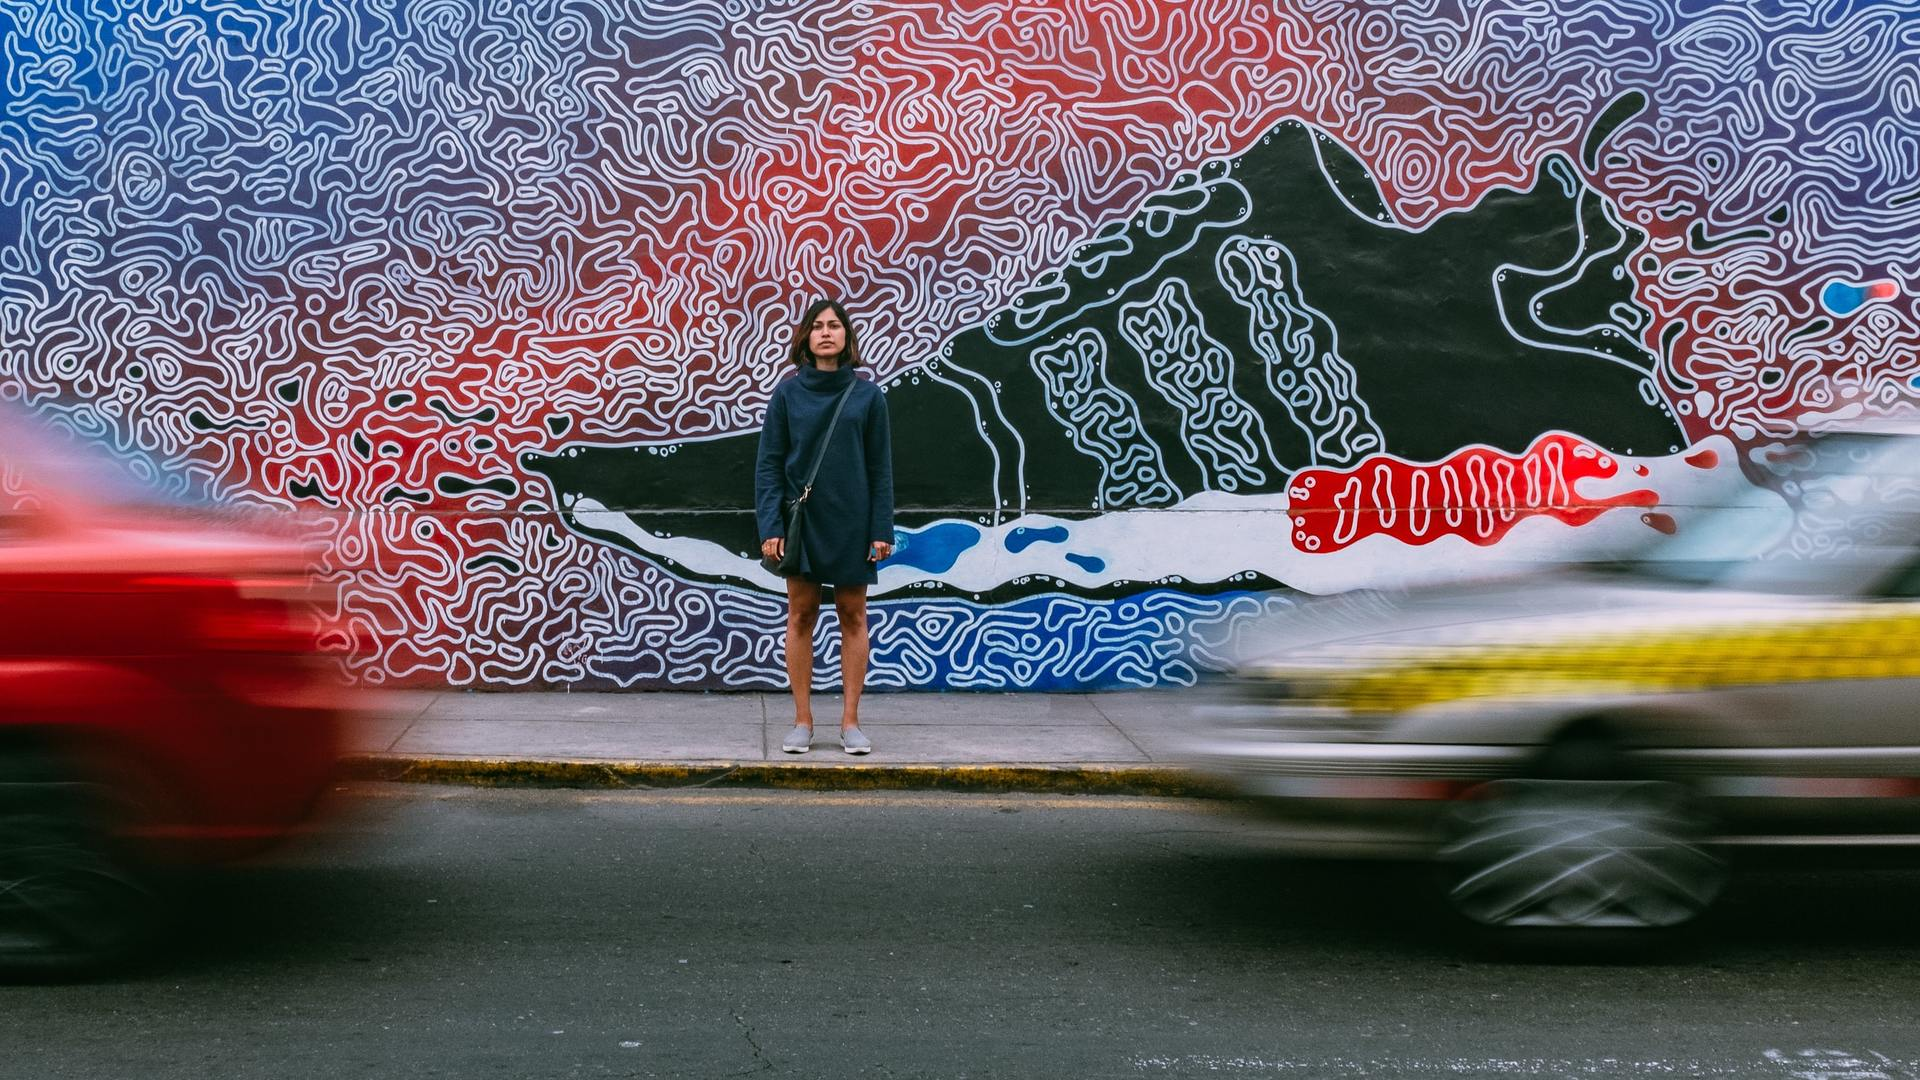 Benefits of mural advertising:  Getting your brand out there, loud and clear